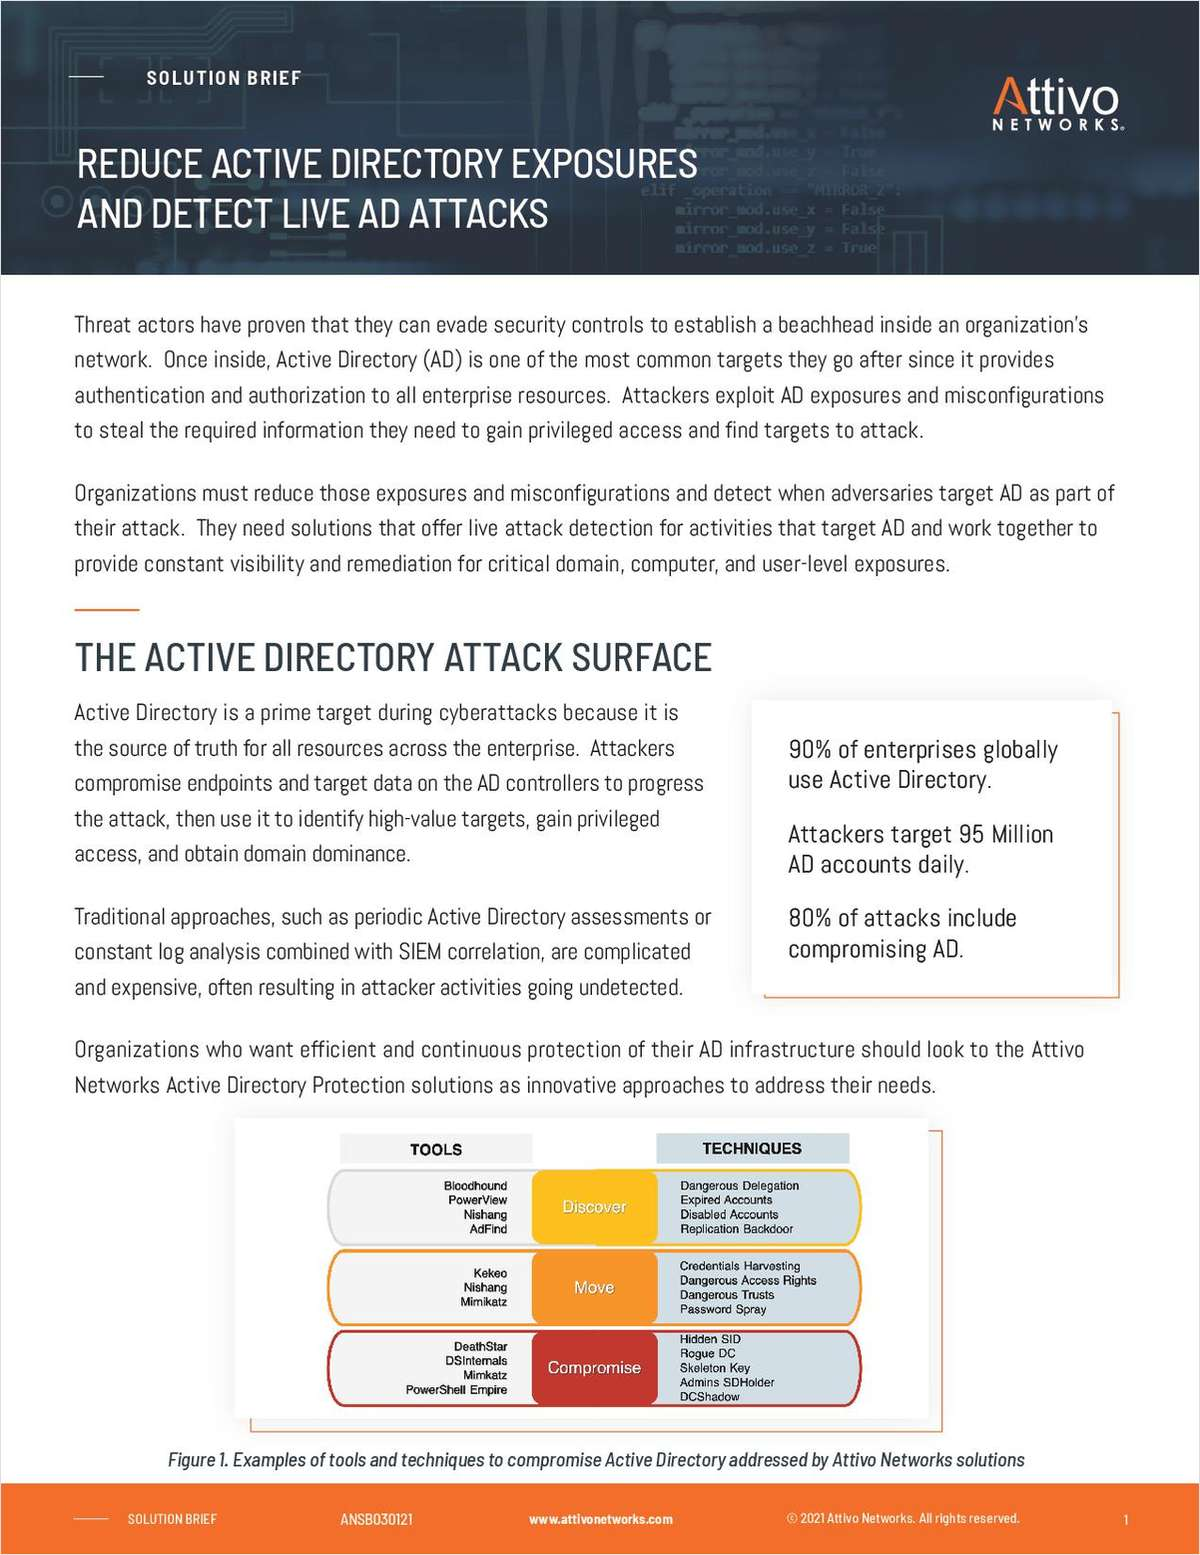 Reduce Active Directory Exposures and Detect Live AD Attacks